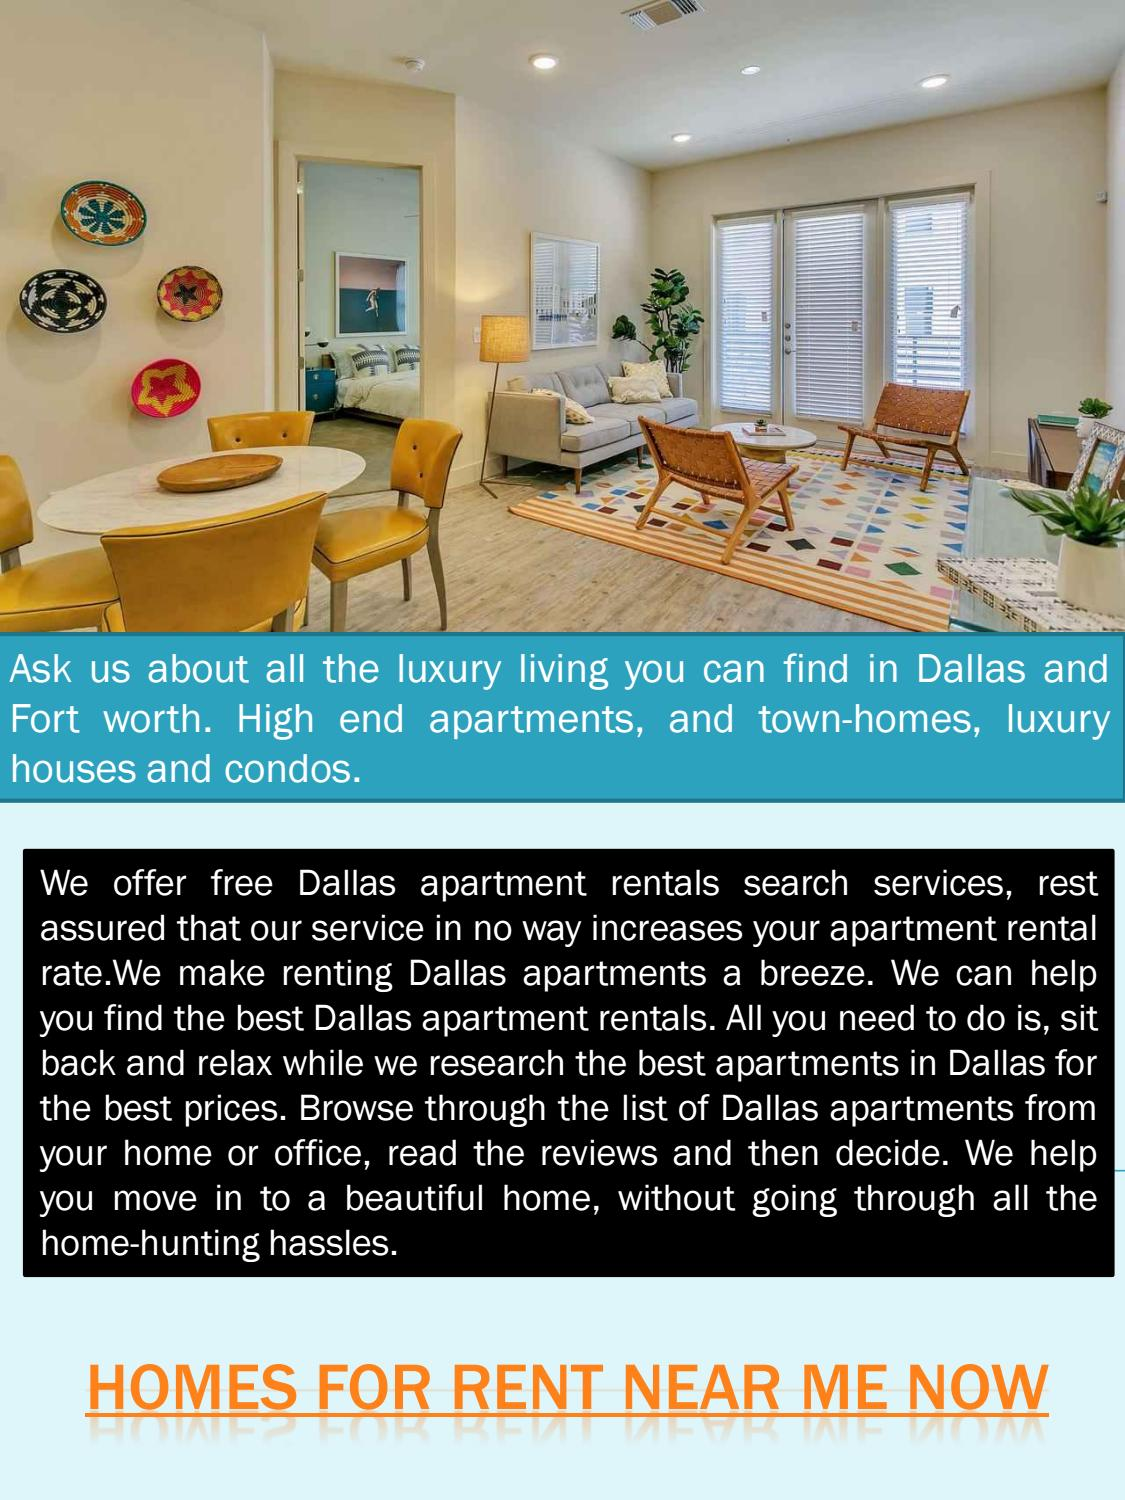 Homes for rent near me now by Apartments for rent near me ...